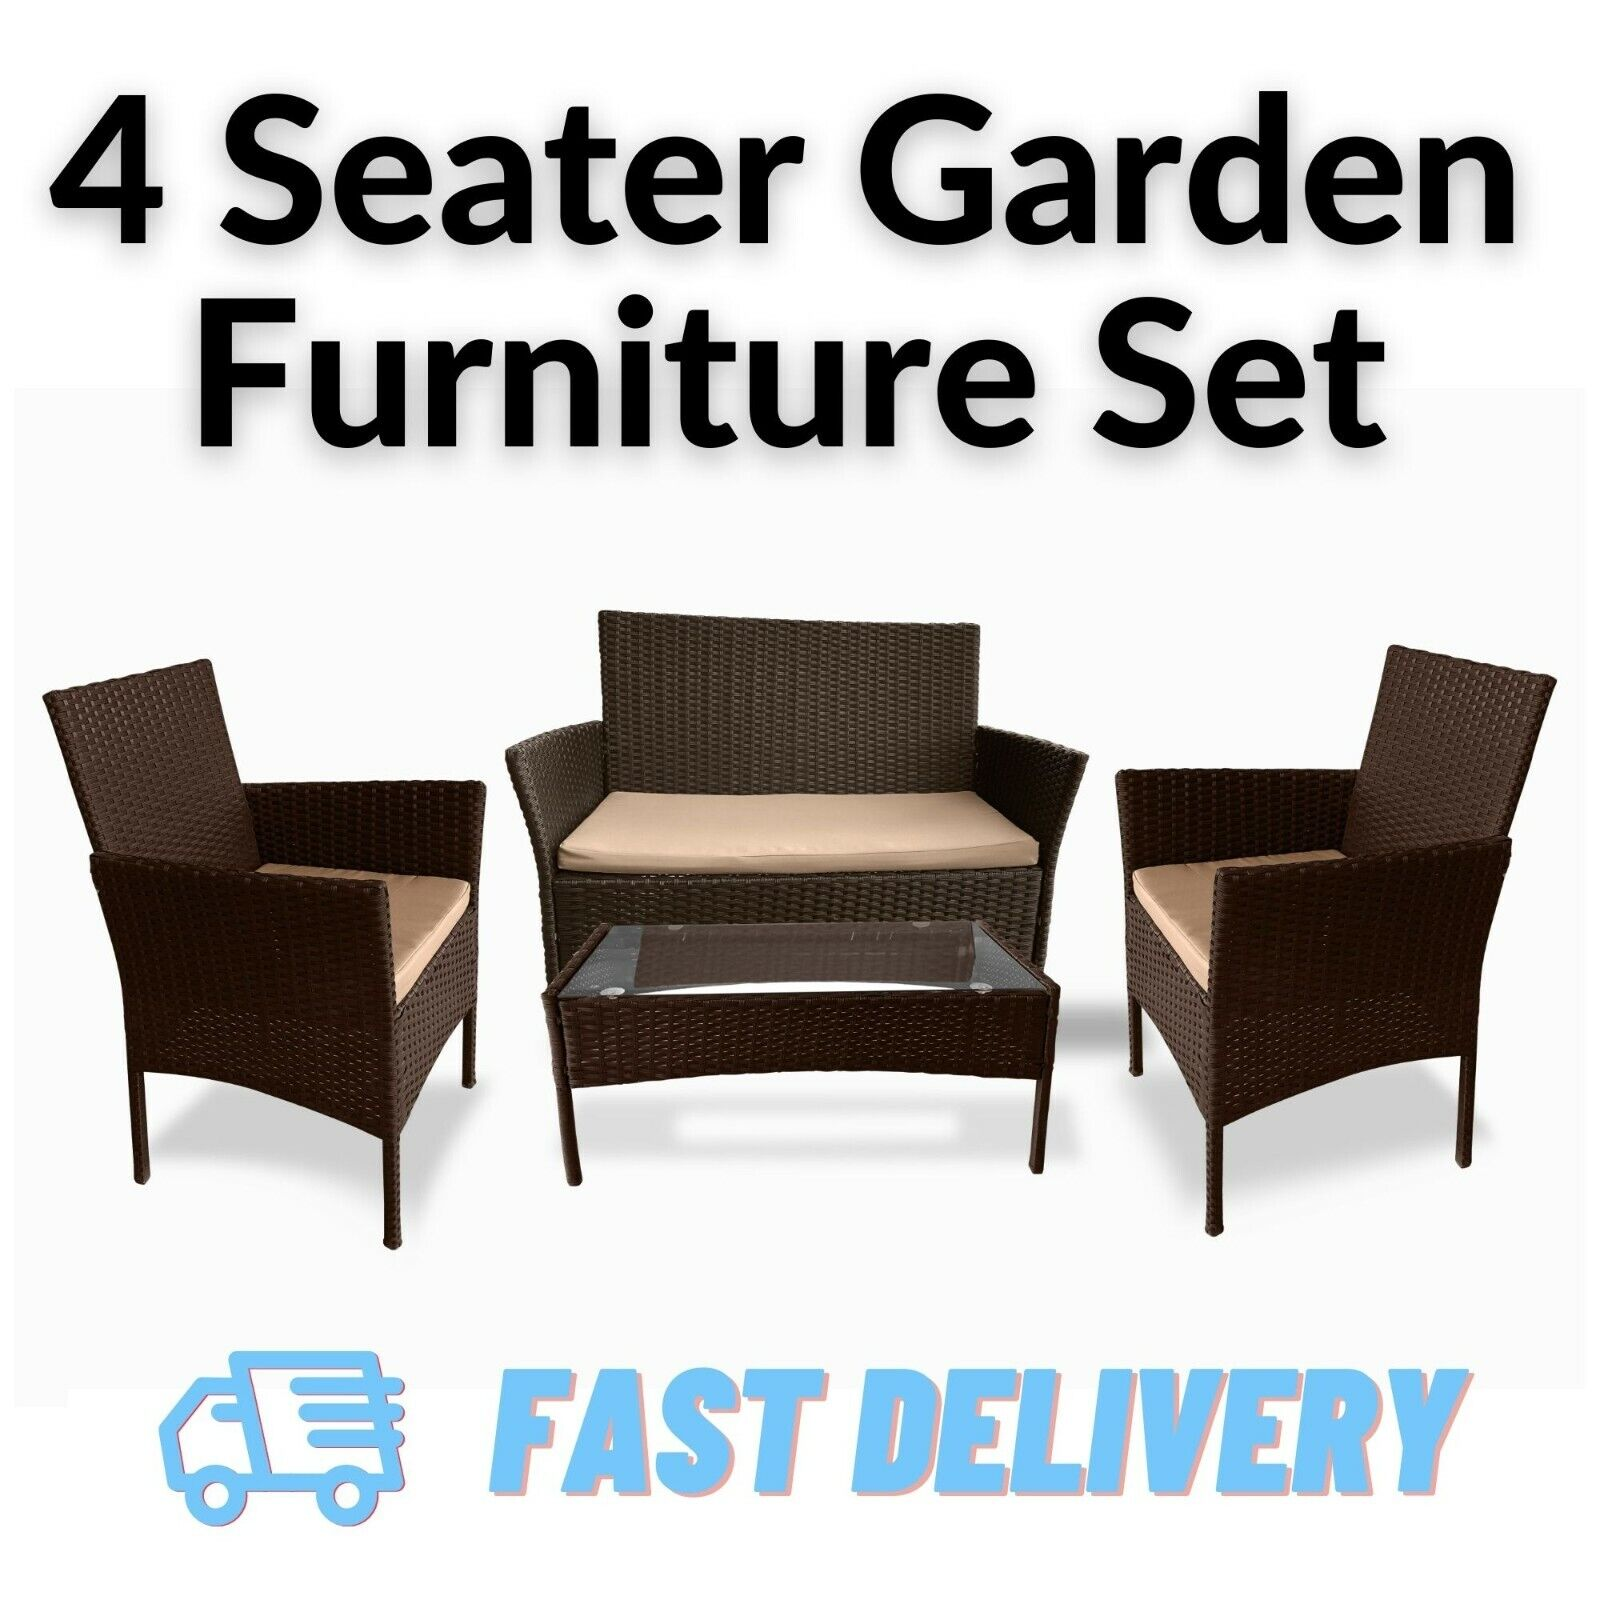 Garden Furniture - Rattan Garden Furniture Set Outdoor Patio 4 Seater Chairs Sofa and Table Lounge